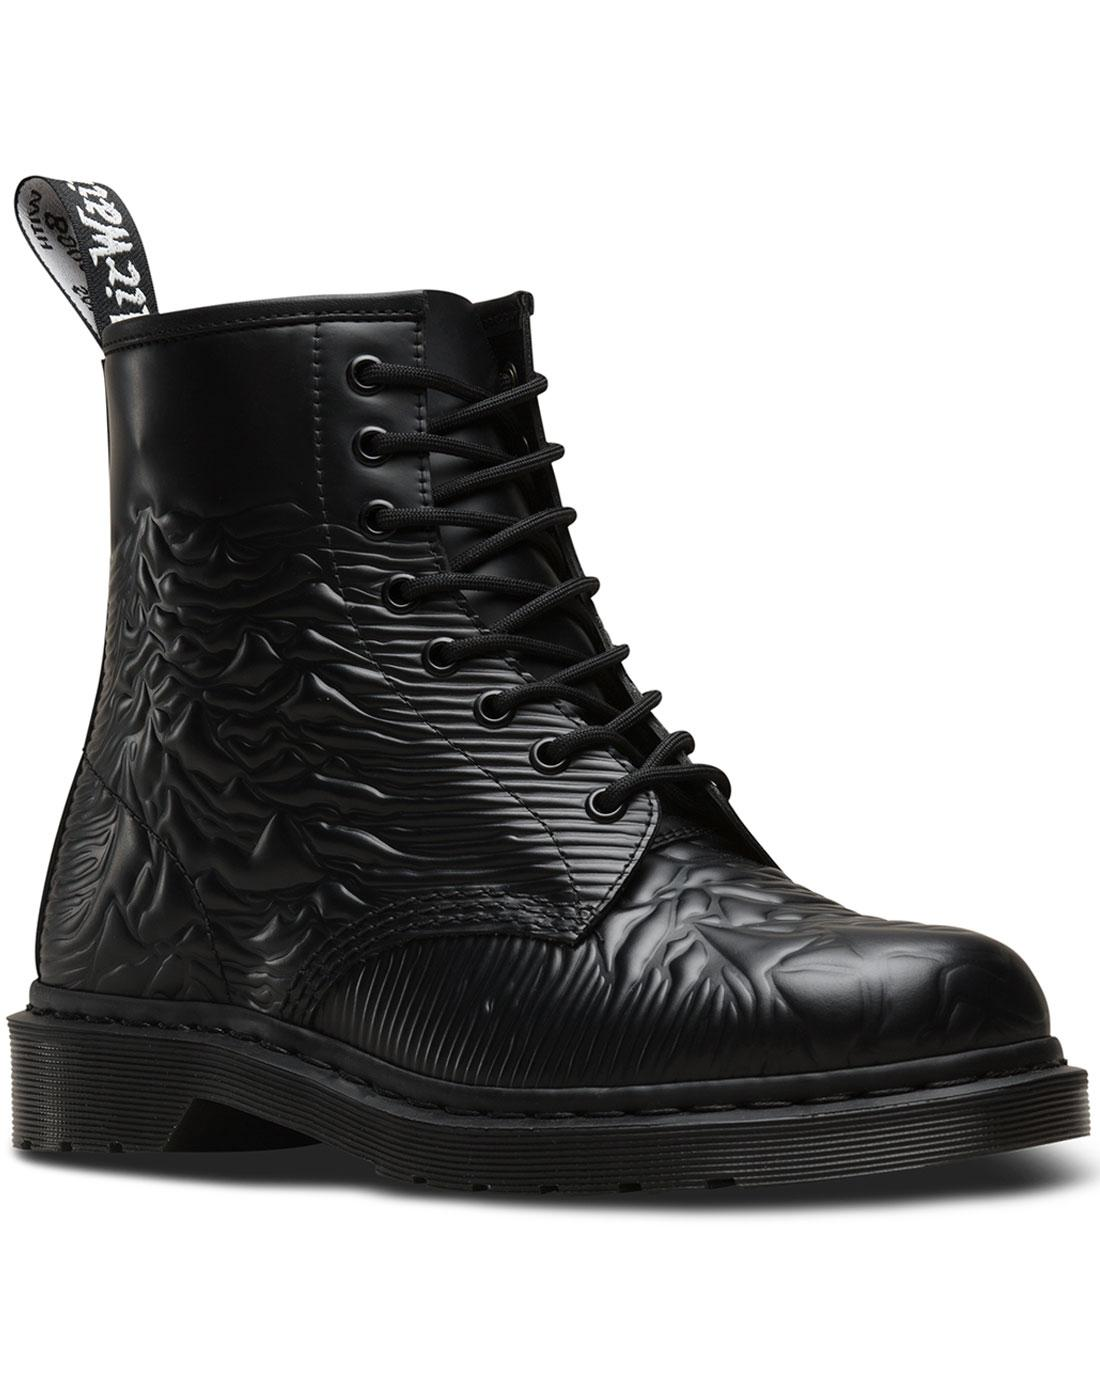 Unknown Pleasures DR MARTENS X JOY DIVISION Boots